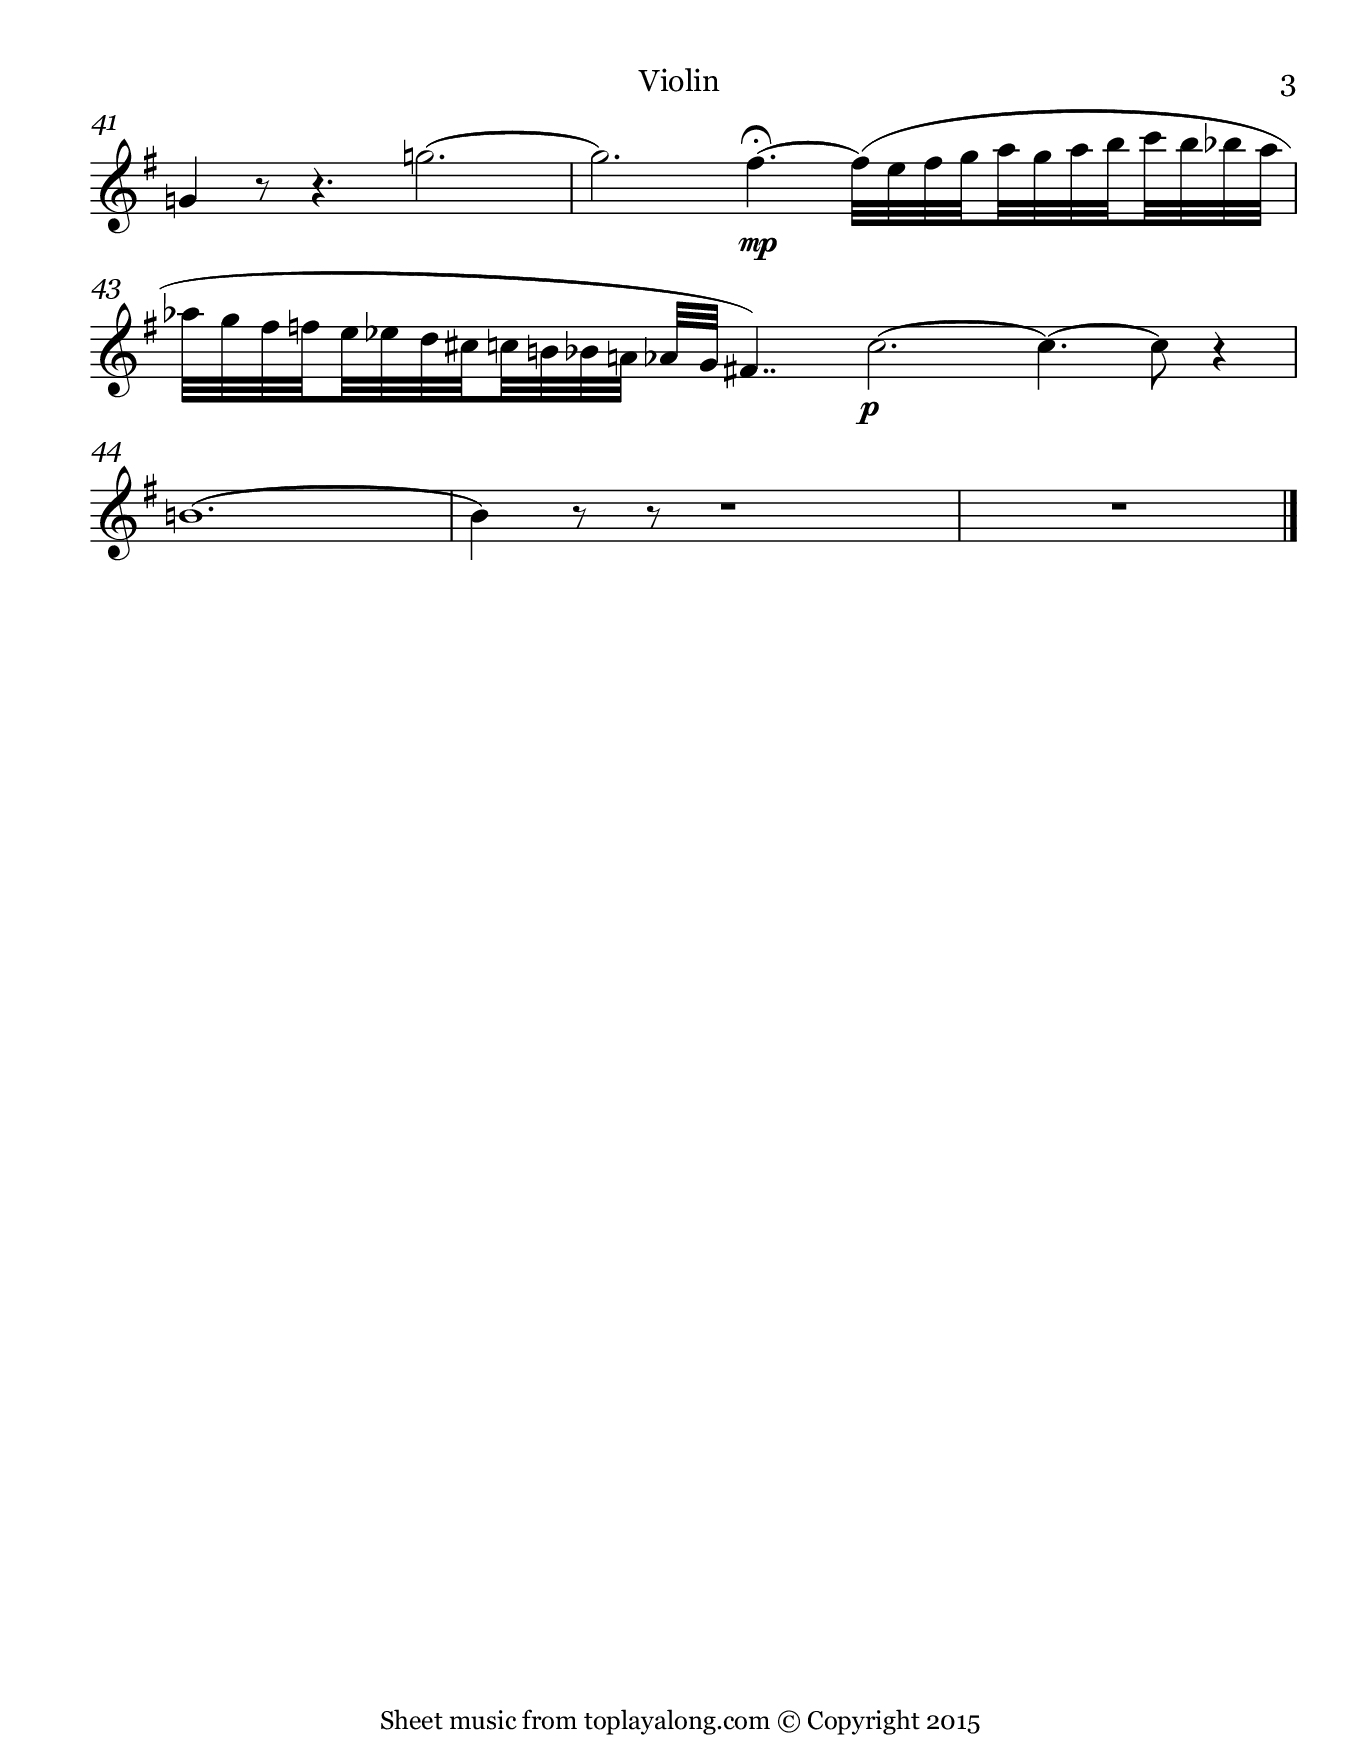 Casta Diva from Norma by Bellini. Sheet music for Violin, page 3.